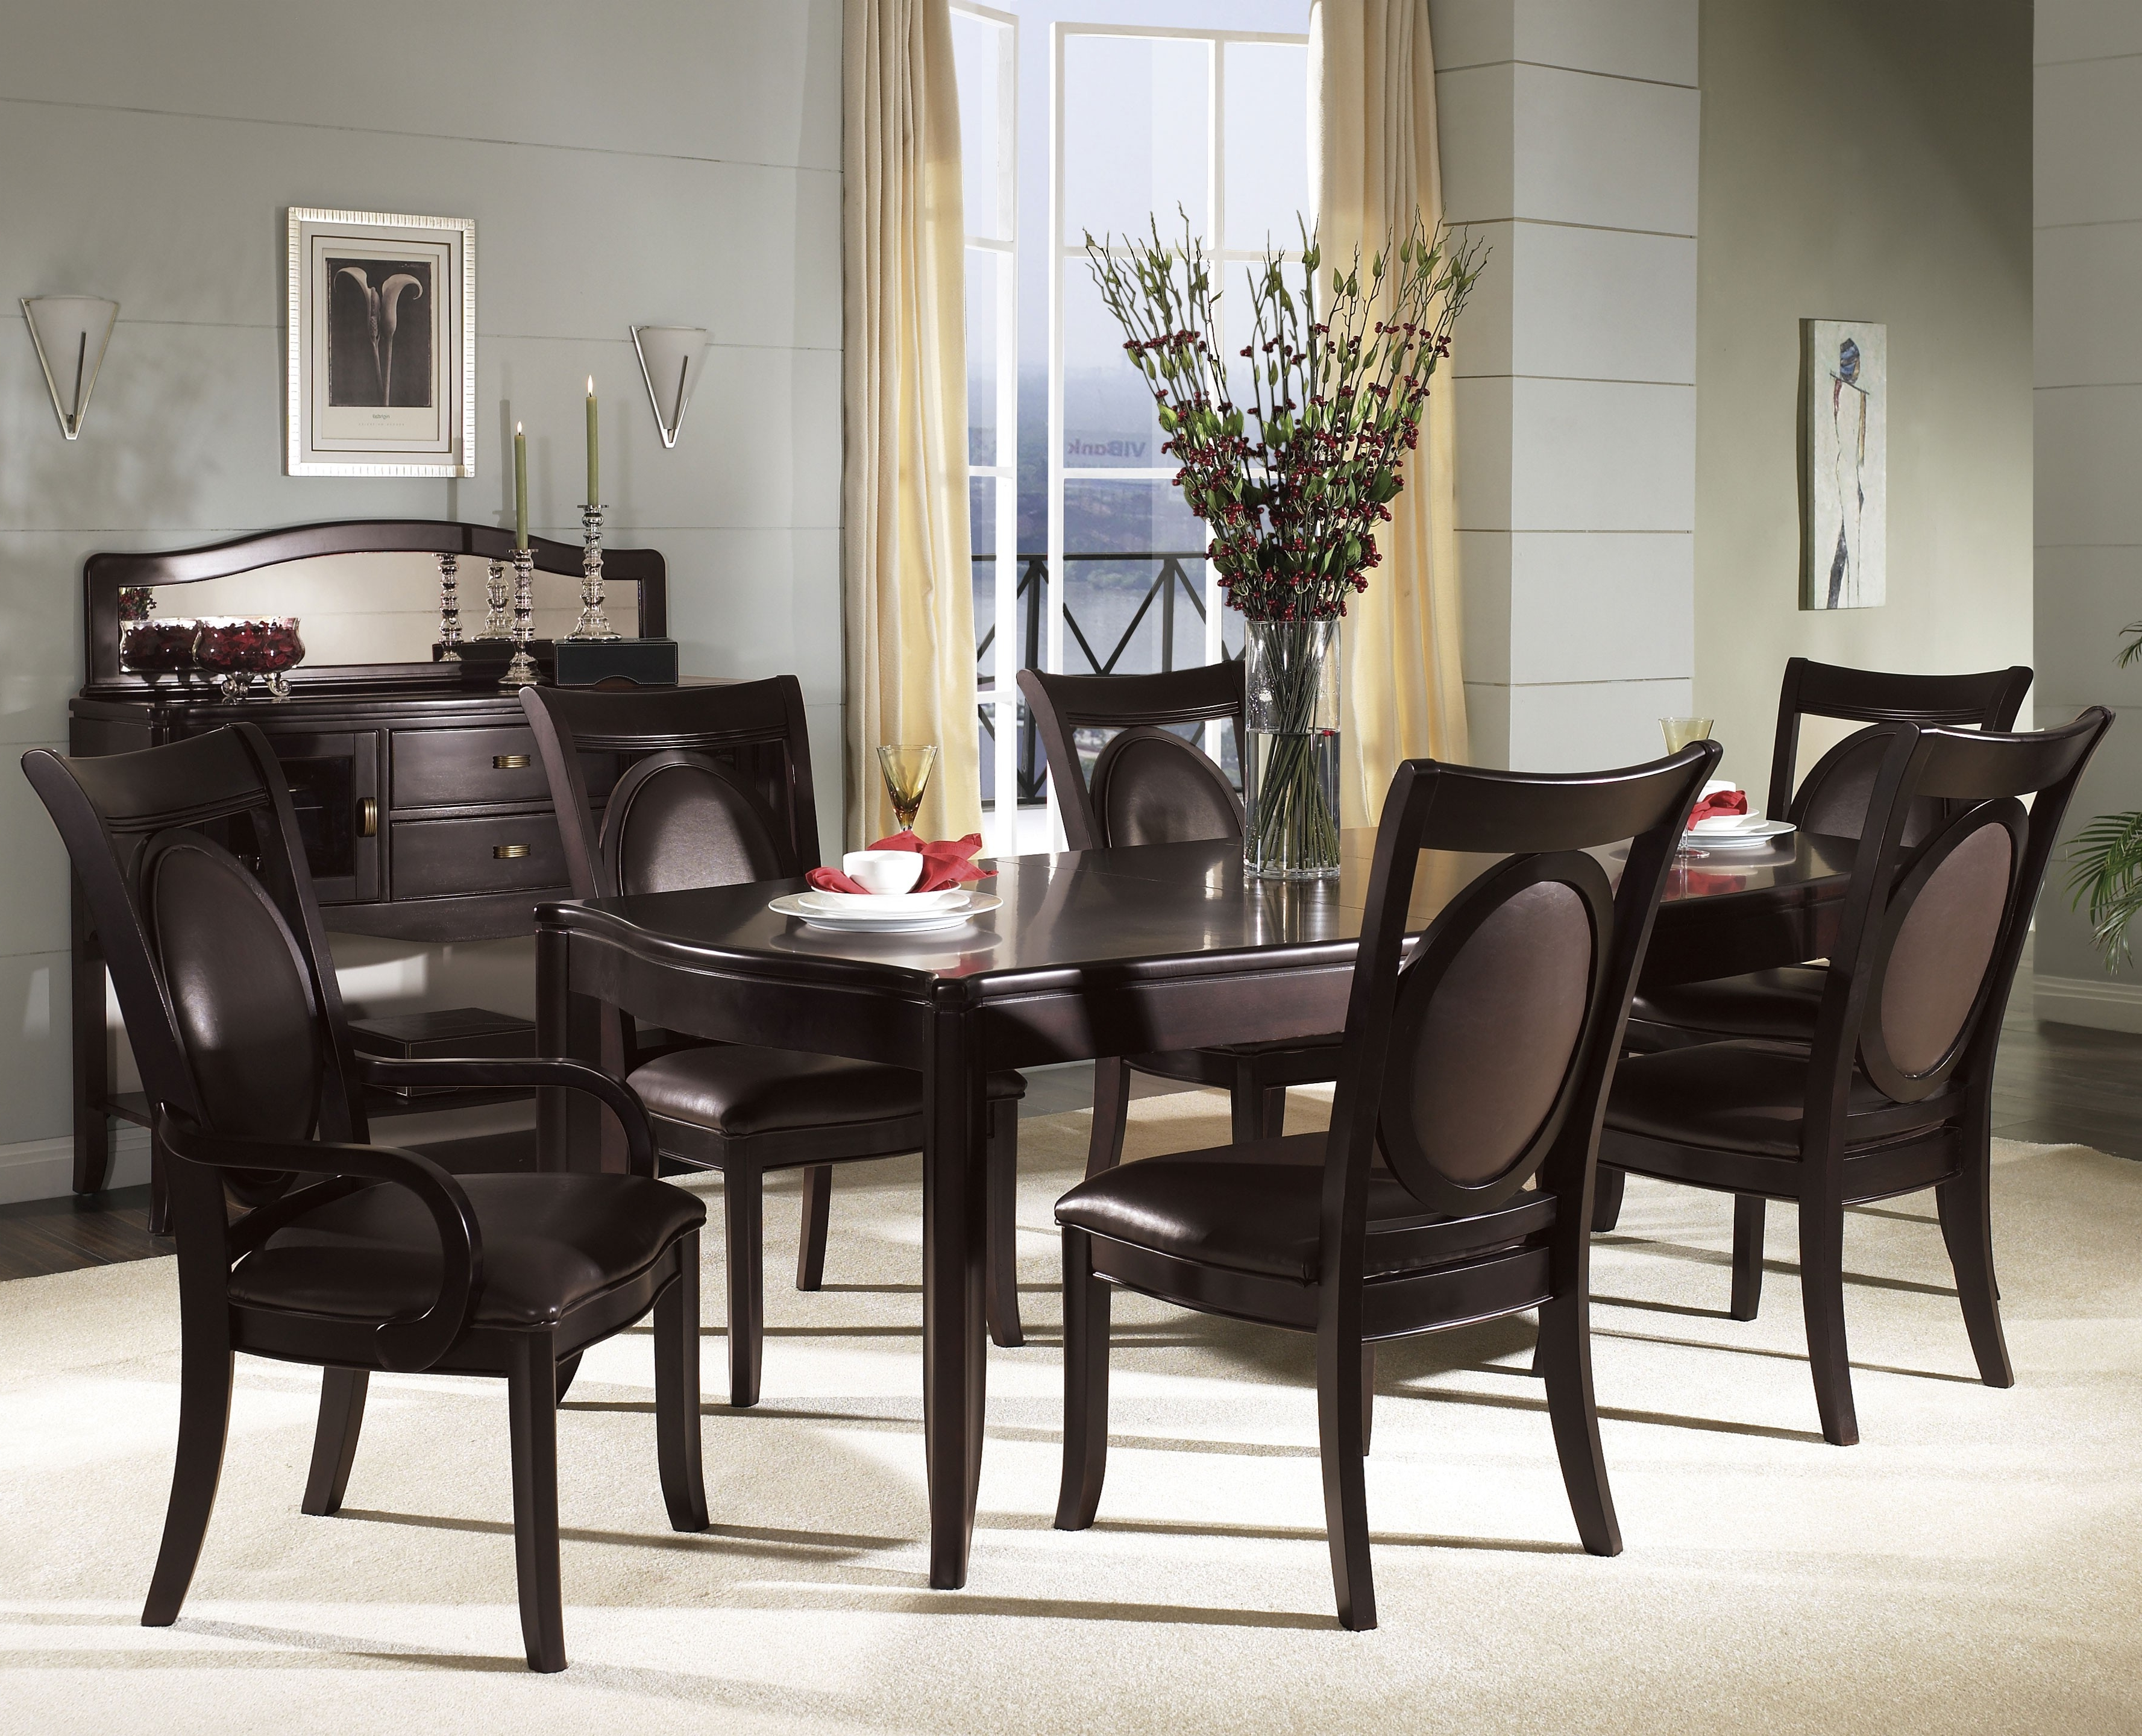 Cheap Dining Sets In Well Known Formal Oval Dining Room Sets New Amusing Cheap Dining Table 5 Sets (View 16 of 25)